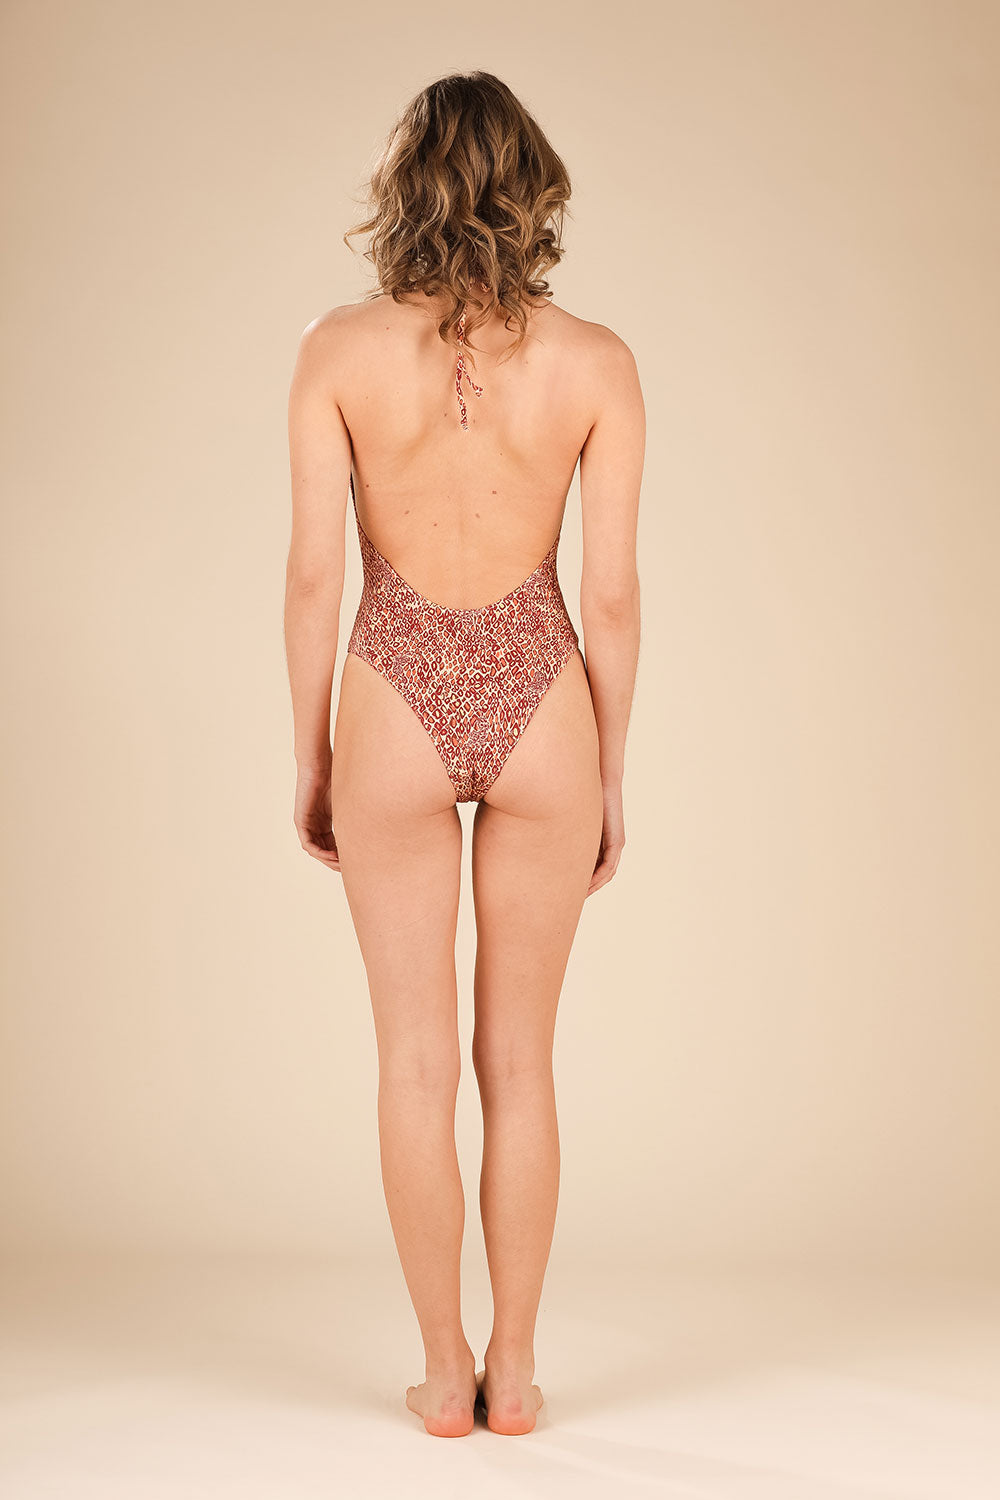 Monokini Popy Open Back - Orange Wild